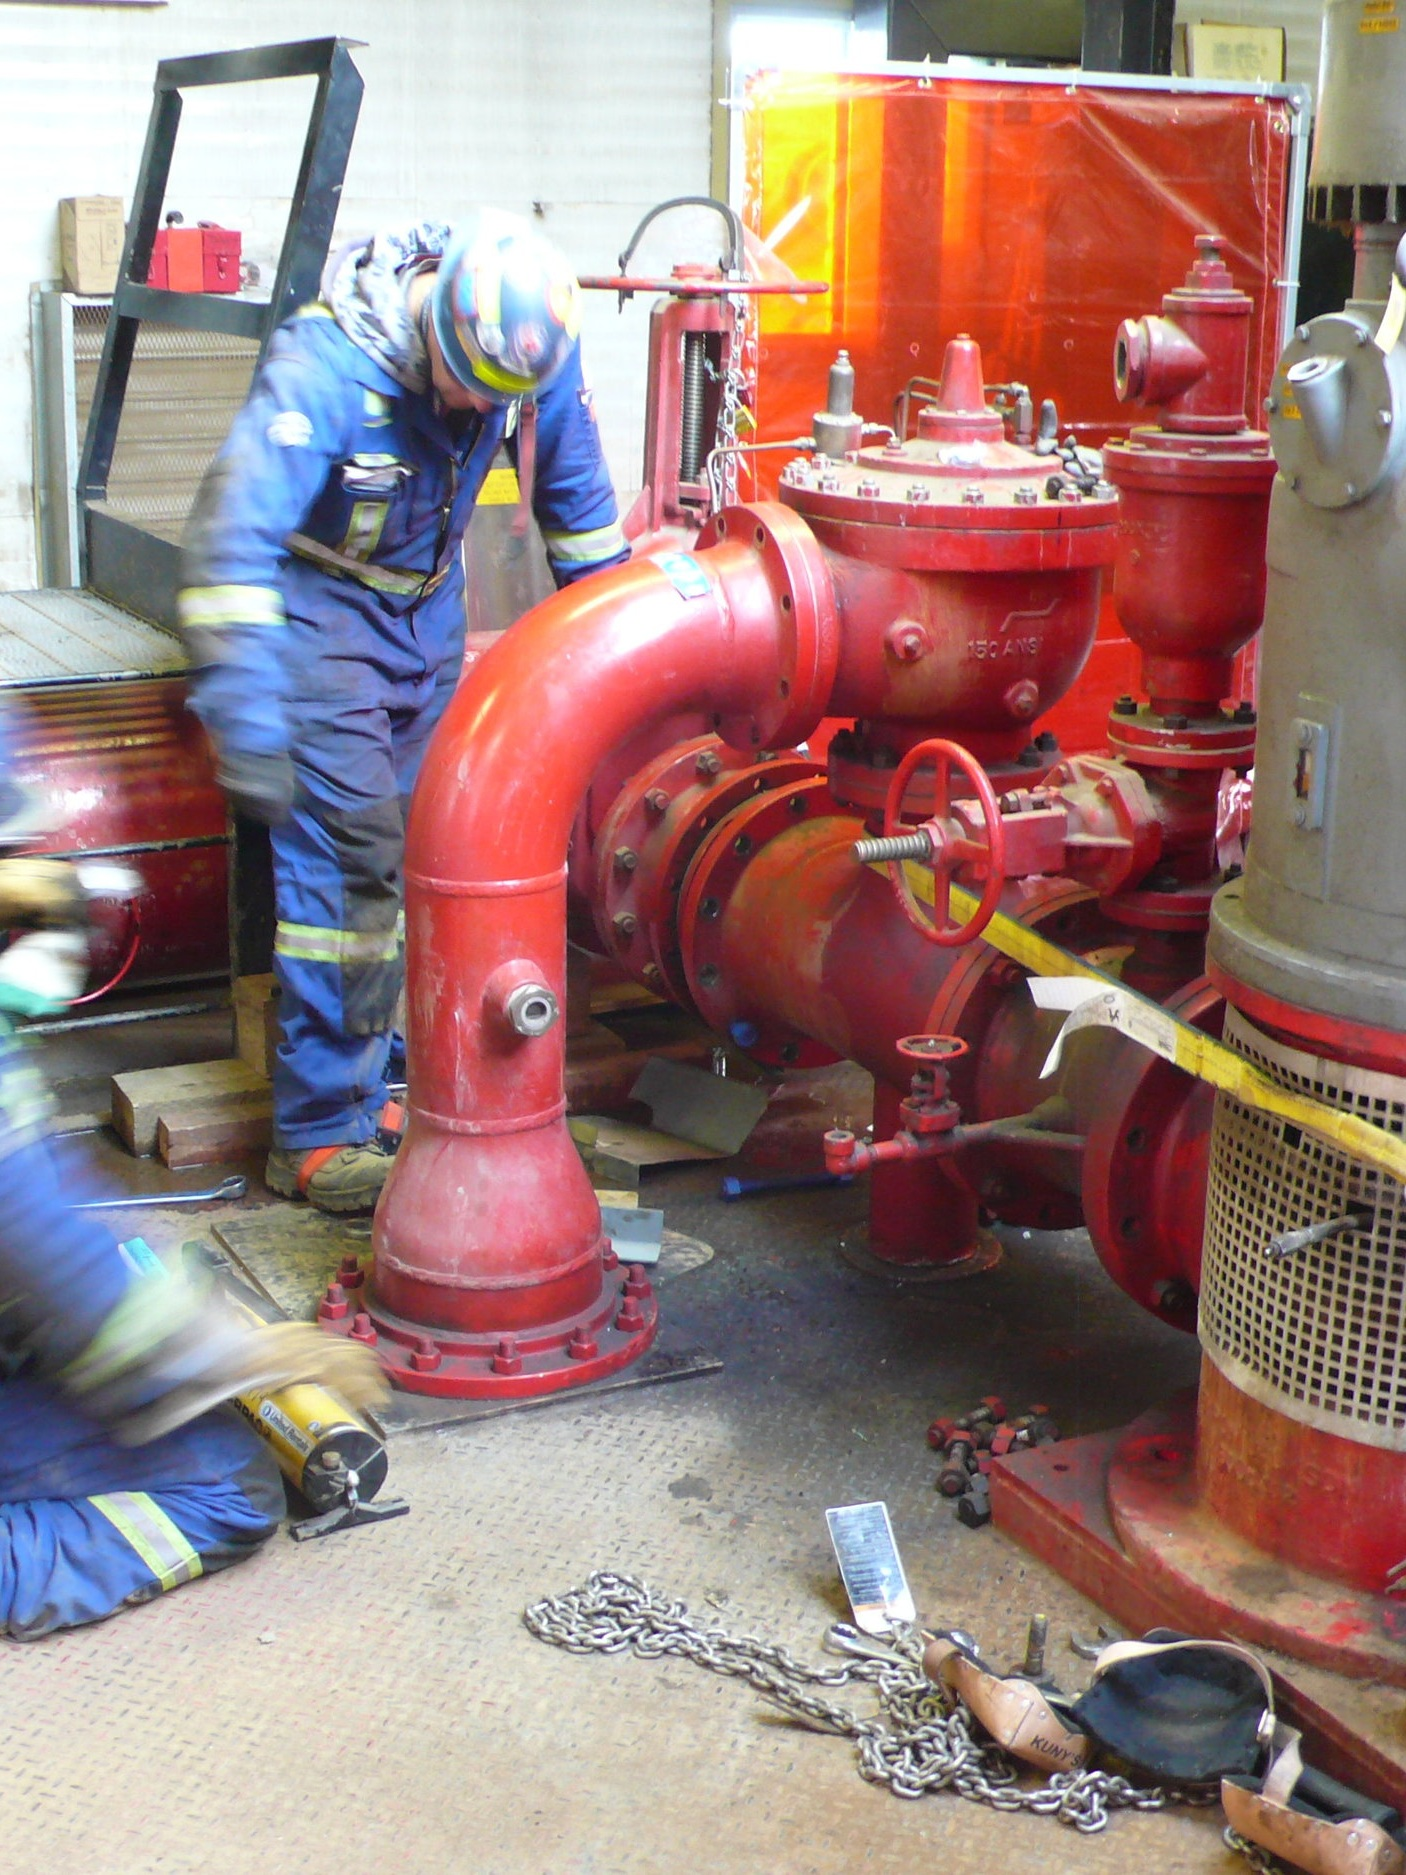 Fire Protection. - You can rest assured that we're looking after your most valuable assets, so you can focus on productivity and uptime.